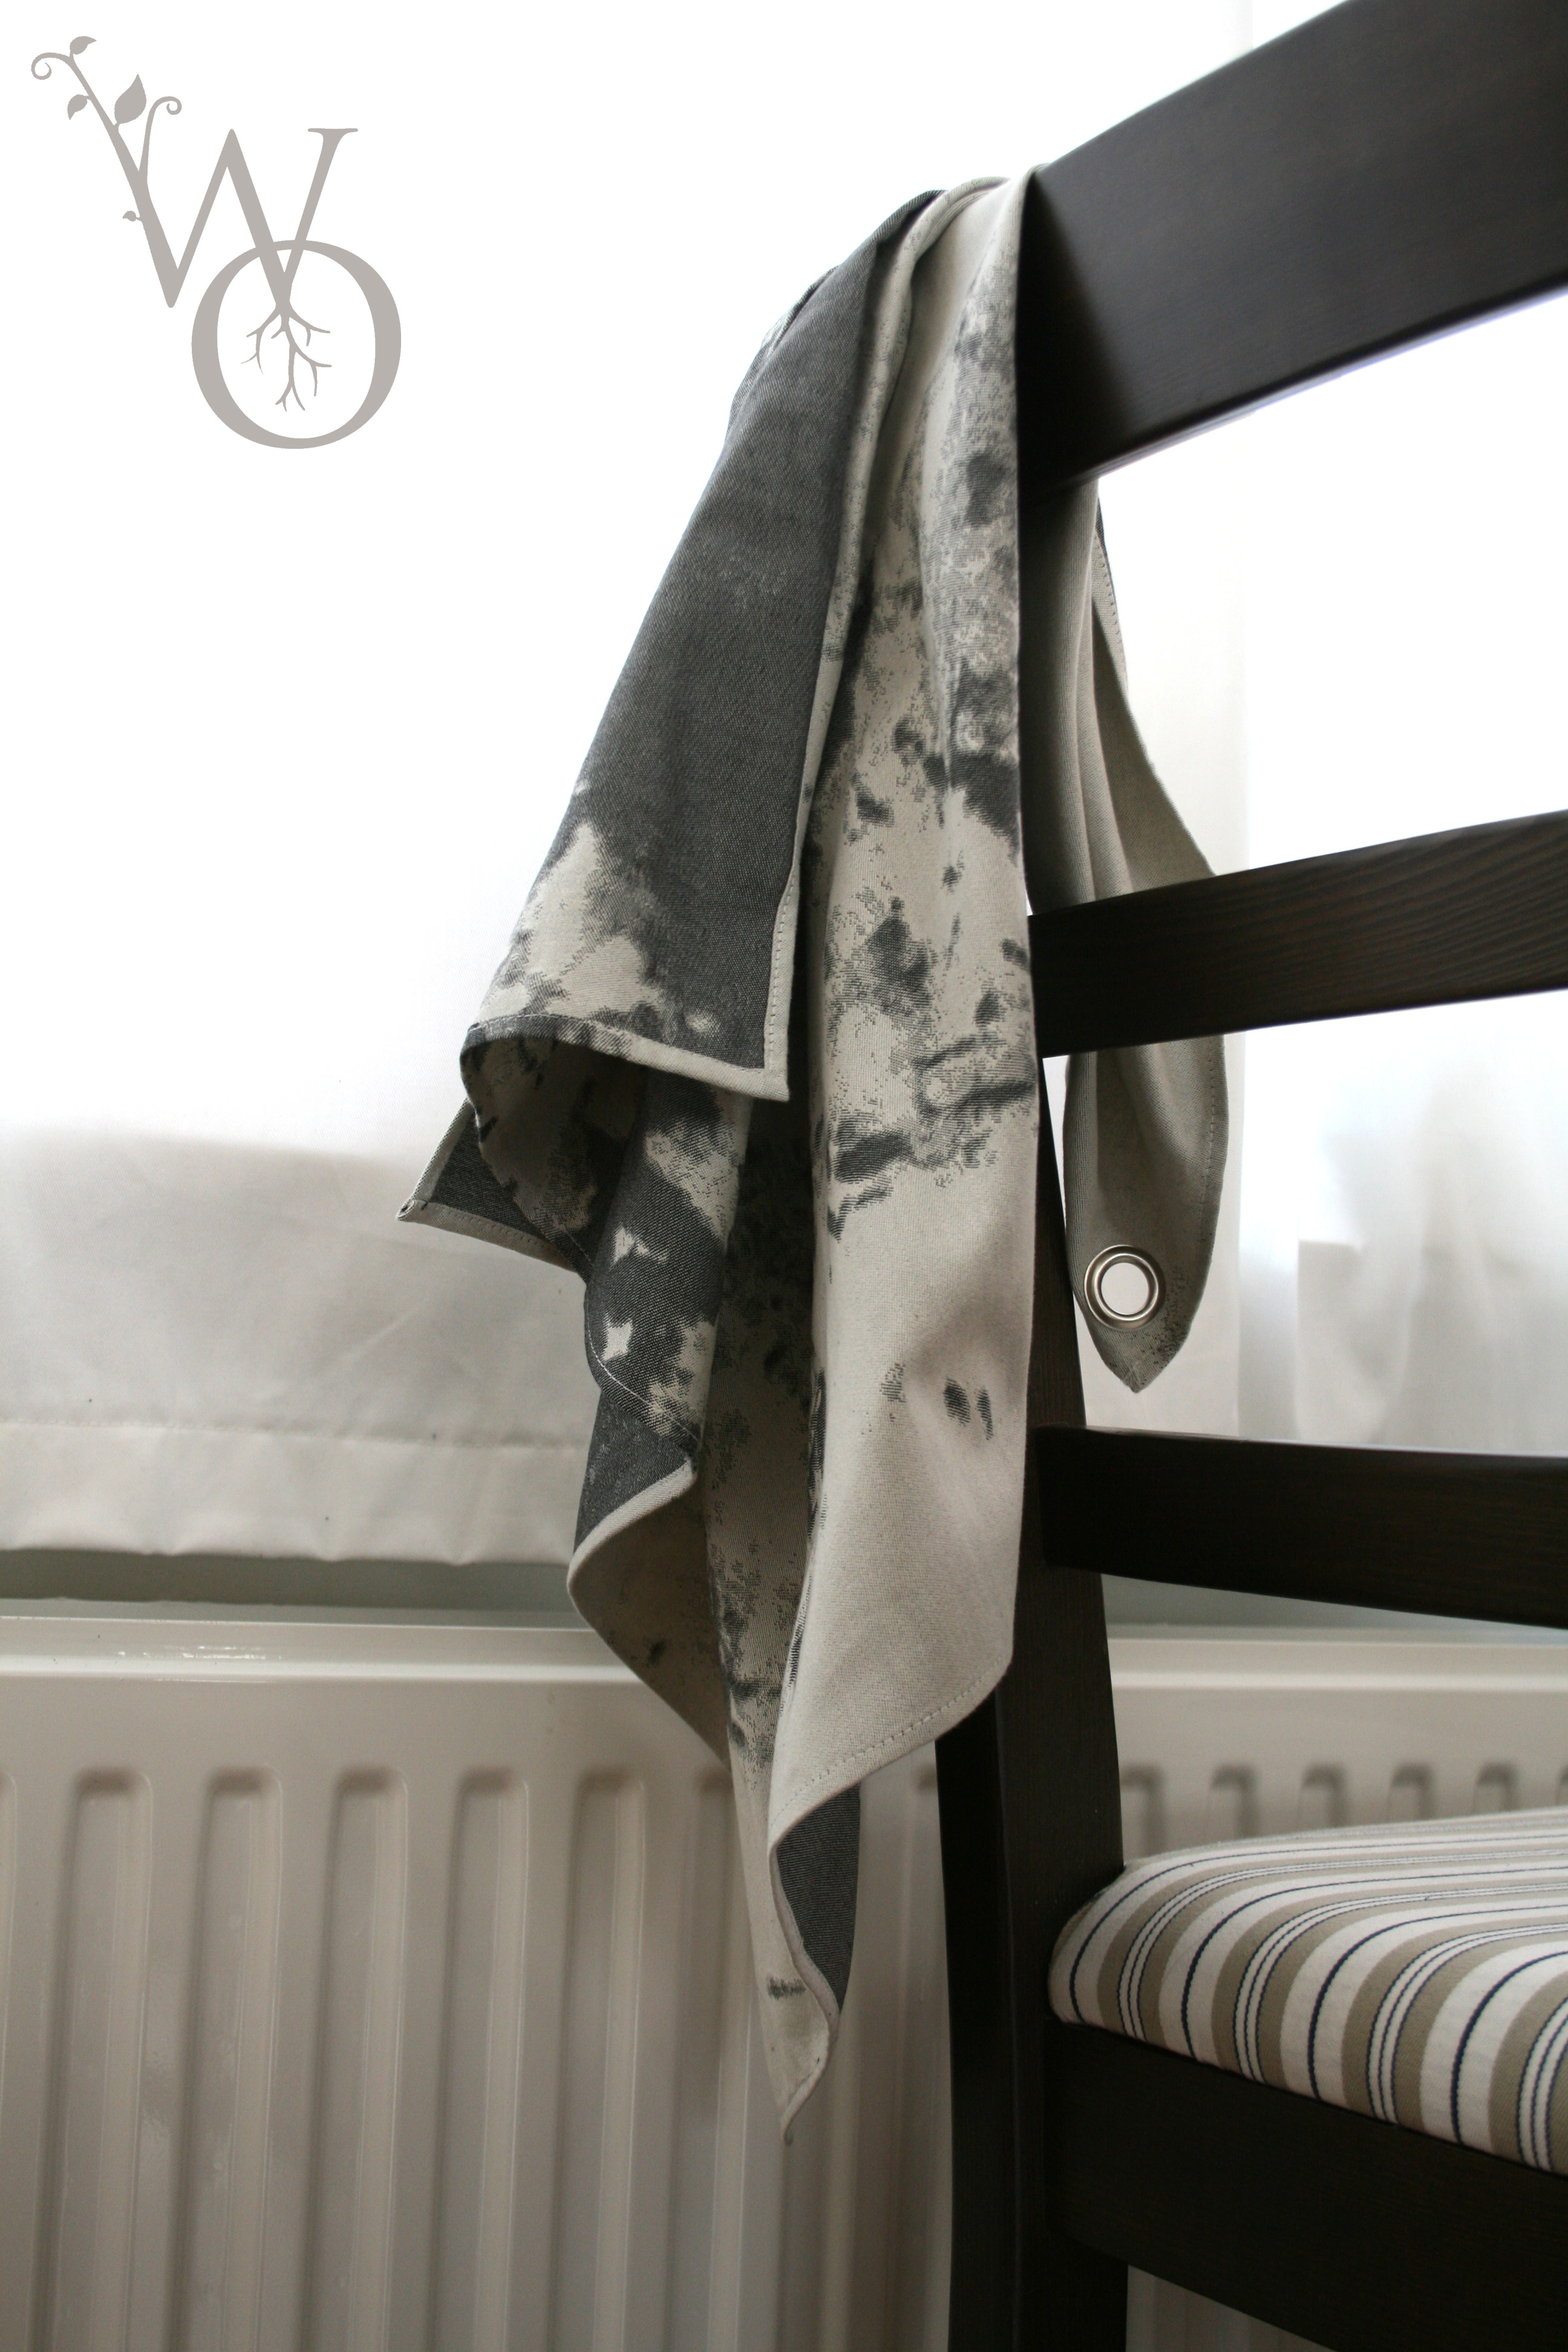 Quality woven black and white pattern Tea Towel 'Ranzig' draped over chair